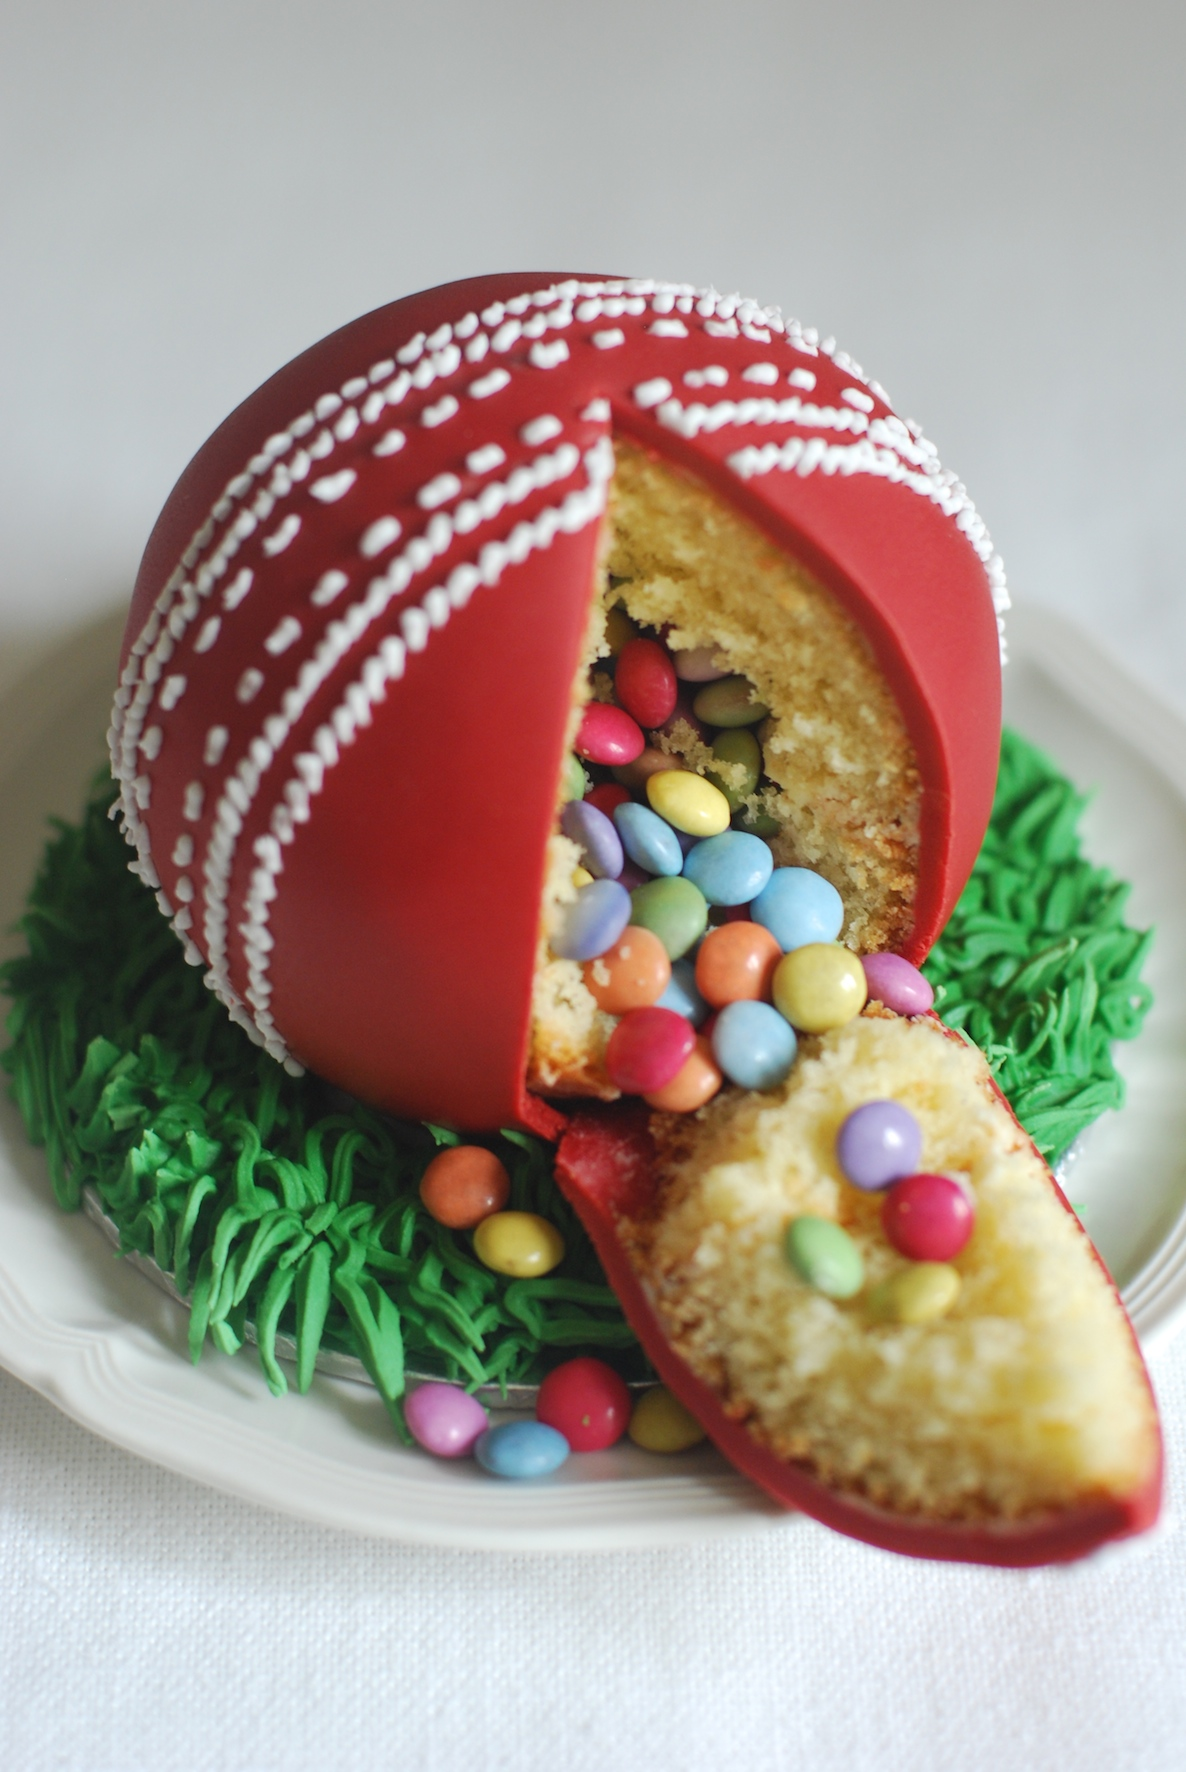 Cricket Cake Afternoon Crumbs